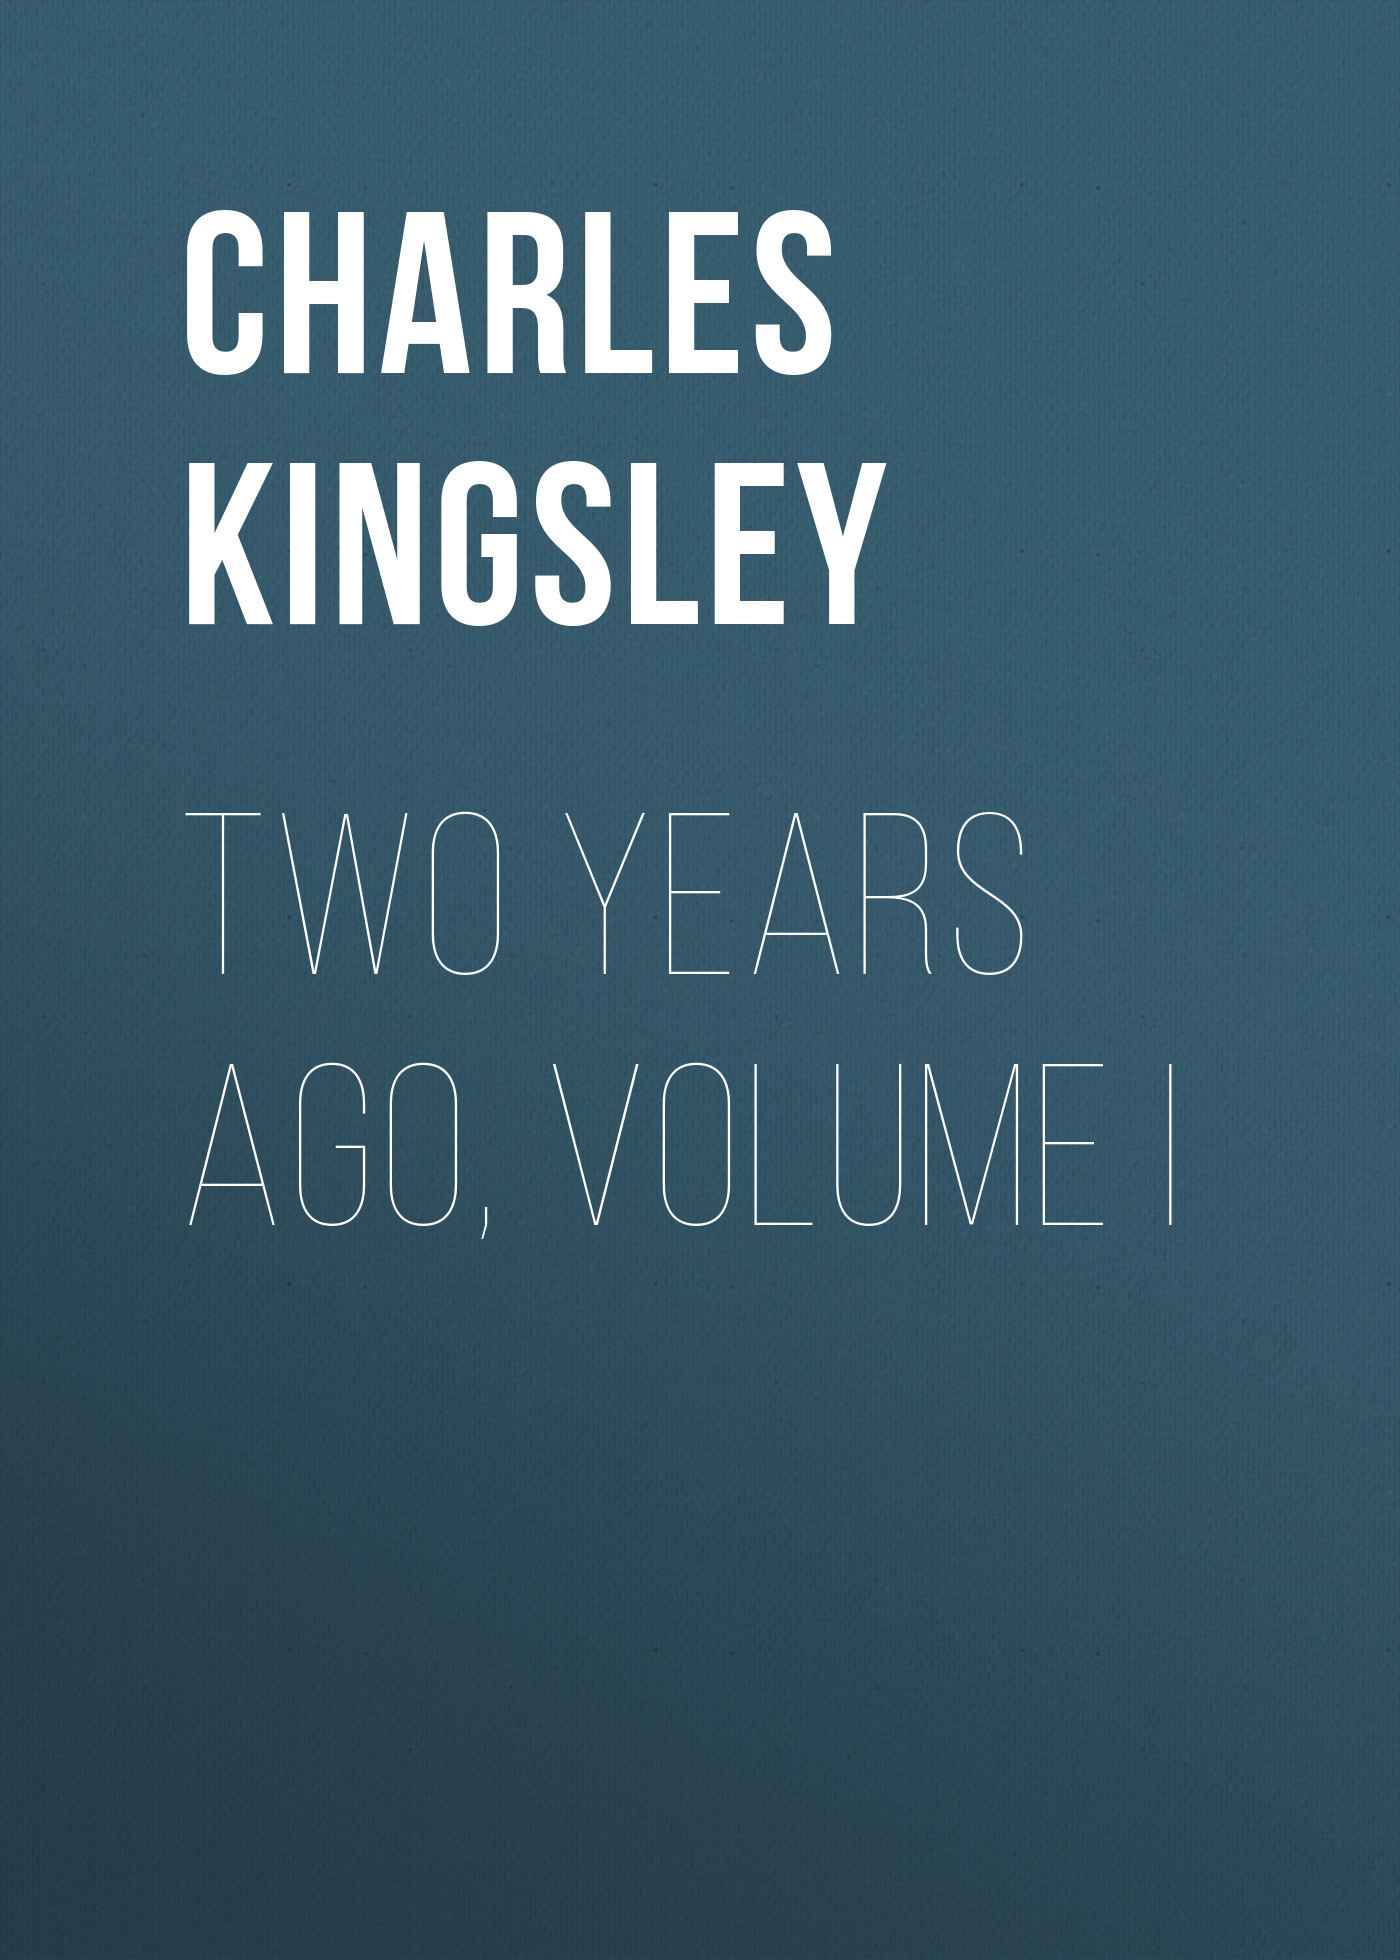 Charles Kingsley Two Years Ago, Volume I flight volume two